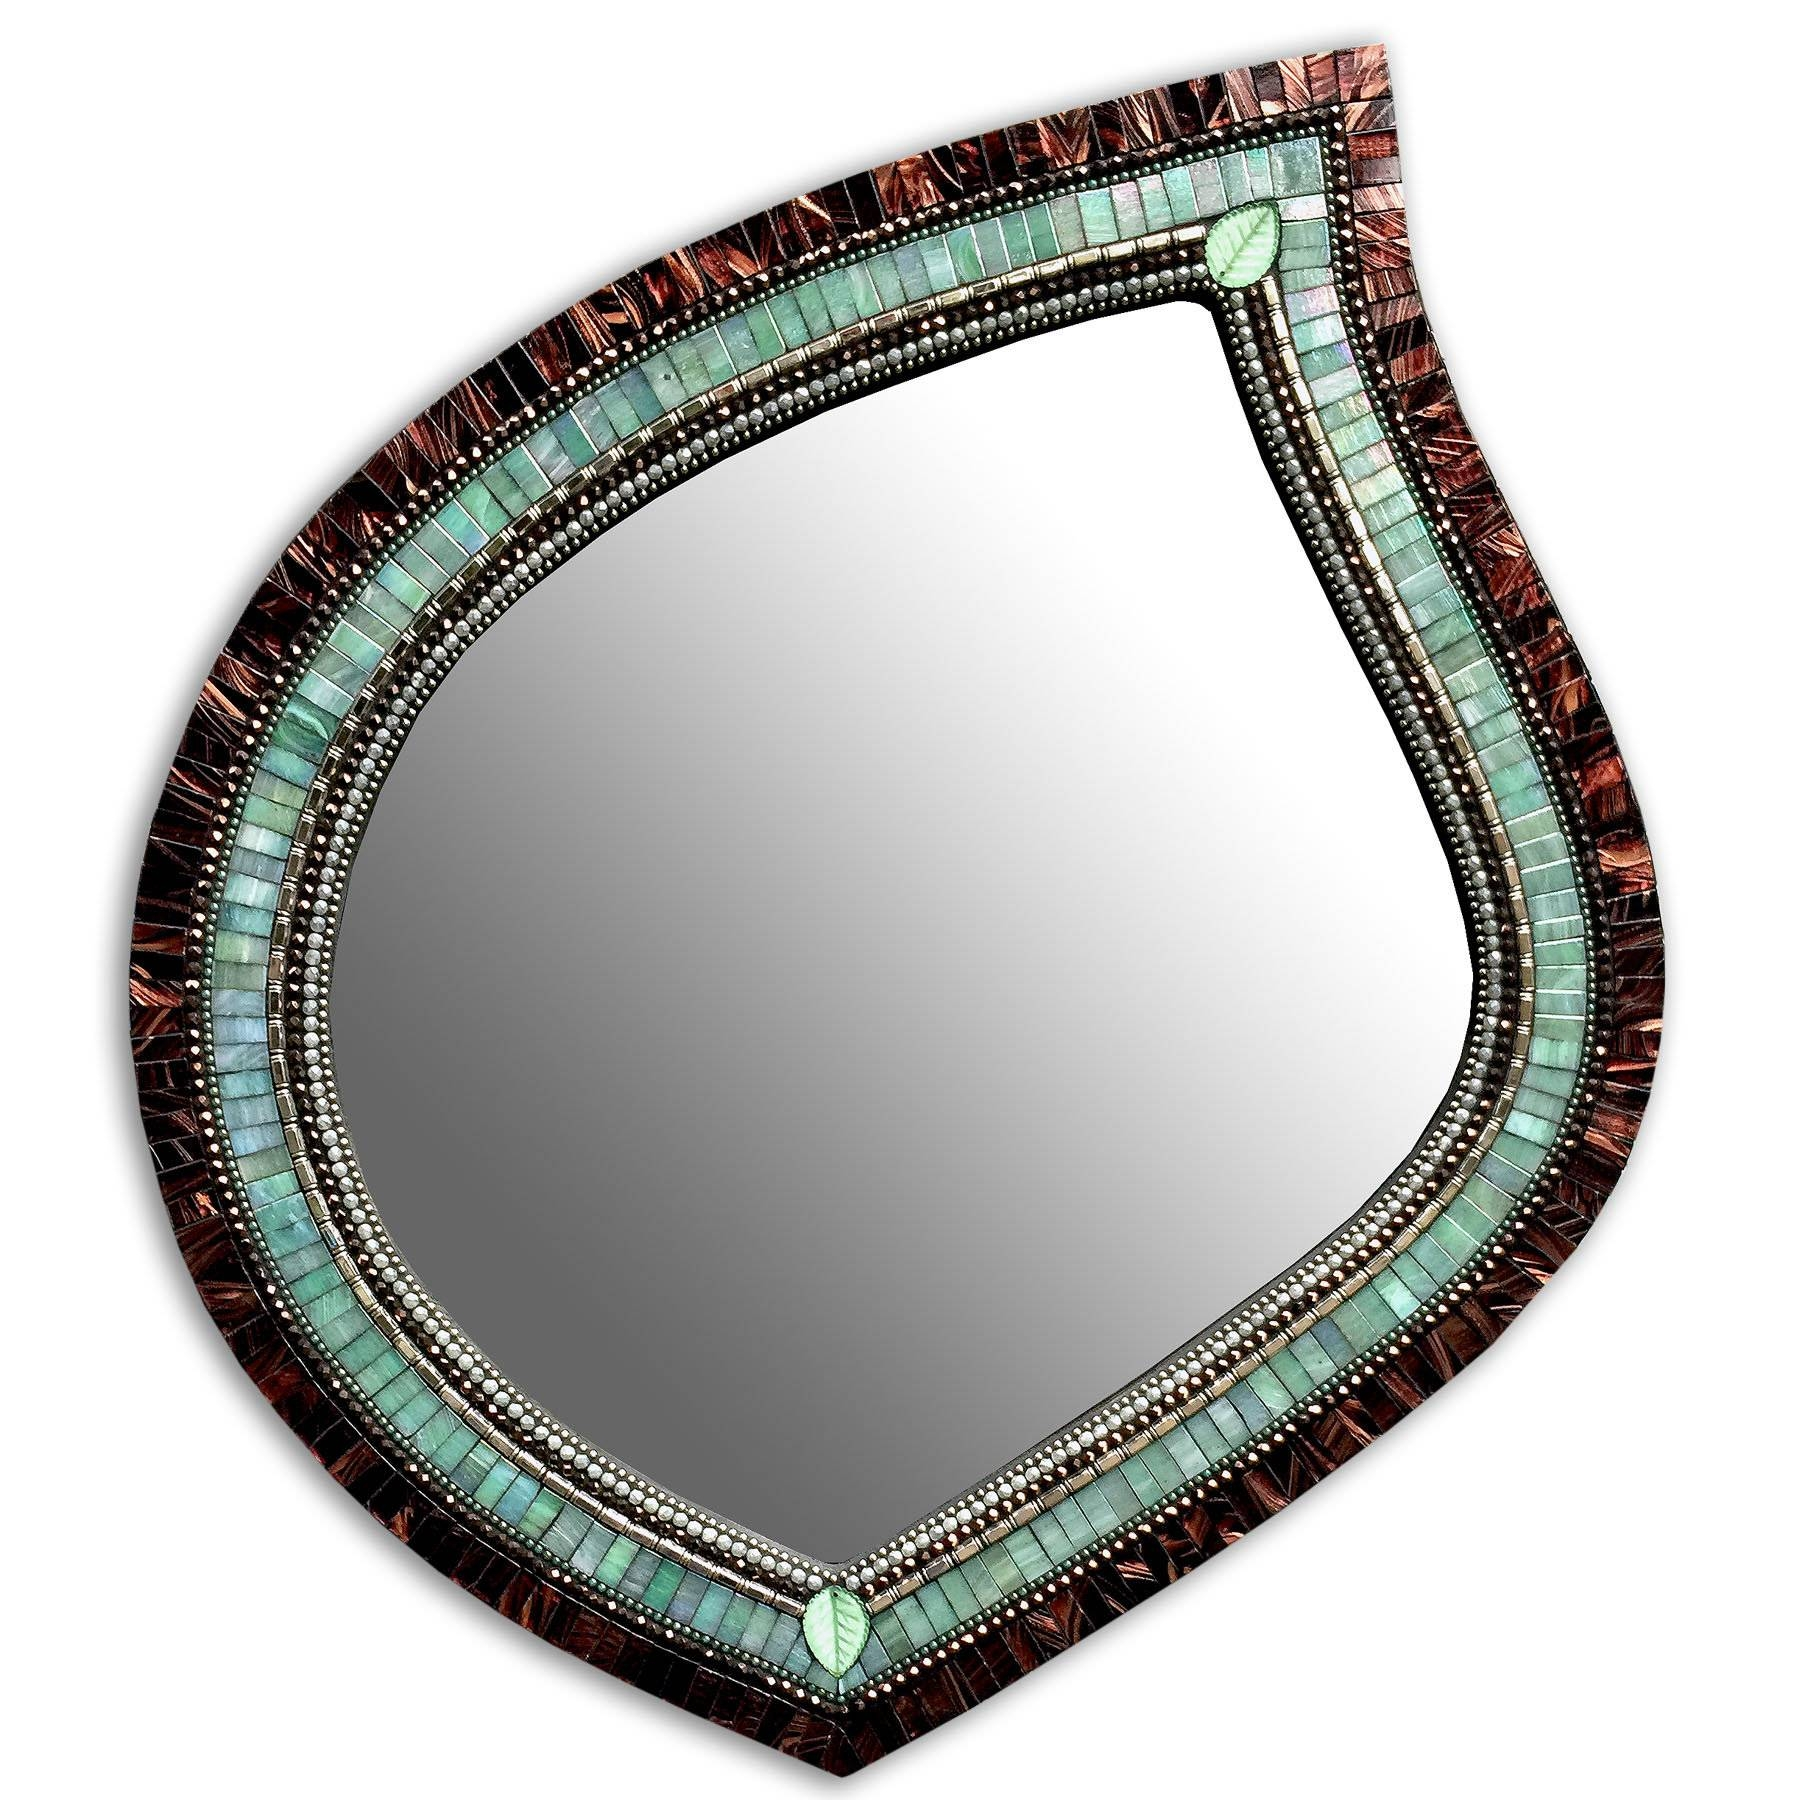 Green Tea Leaf Mirrorangie Heinrich (Mosaic Mirror) | Artful Home inside Mosaic Mirrors (Image 8 of 25)